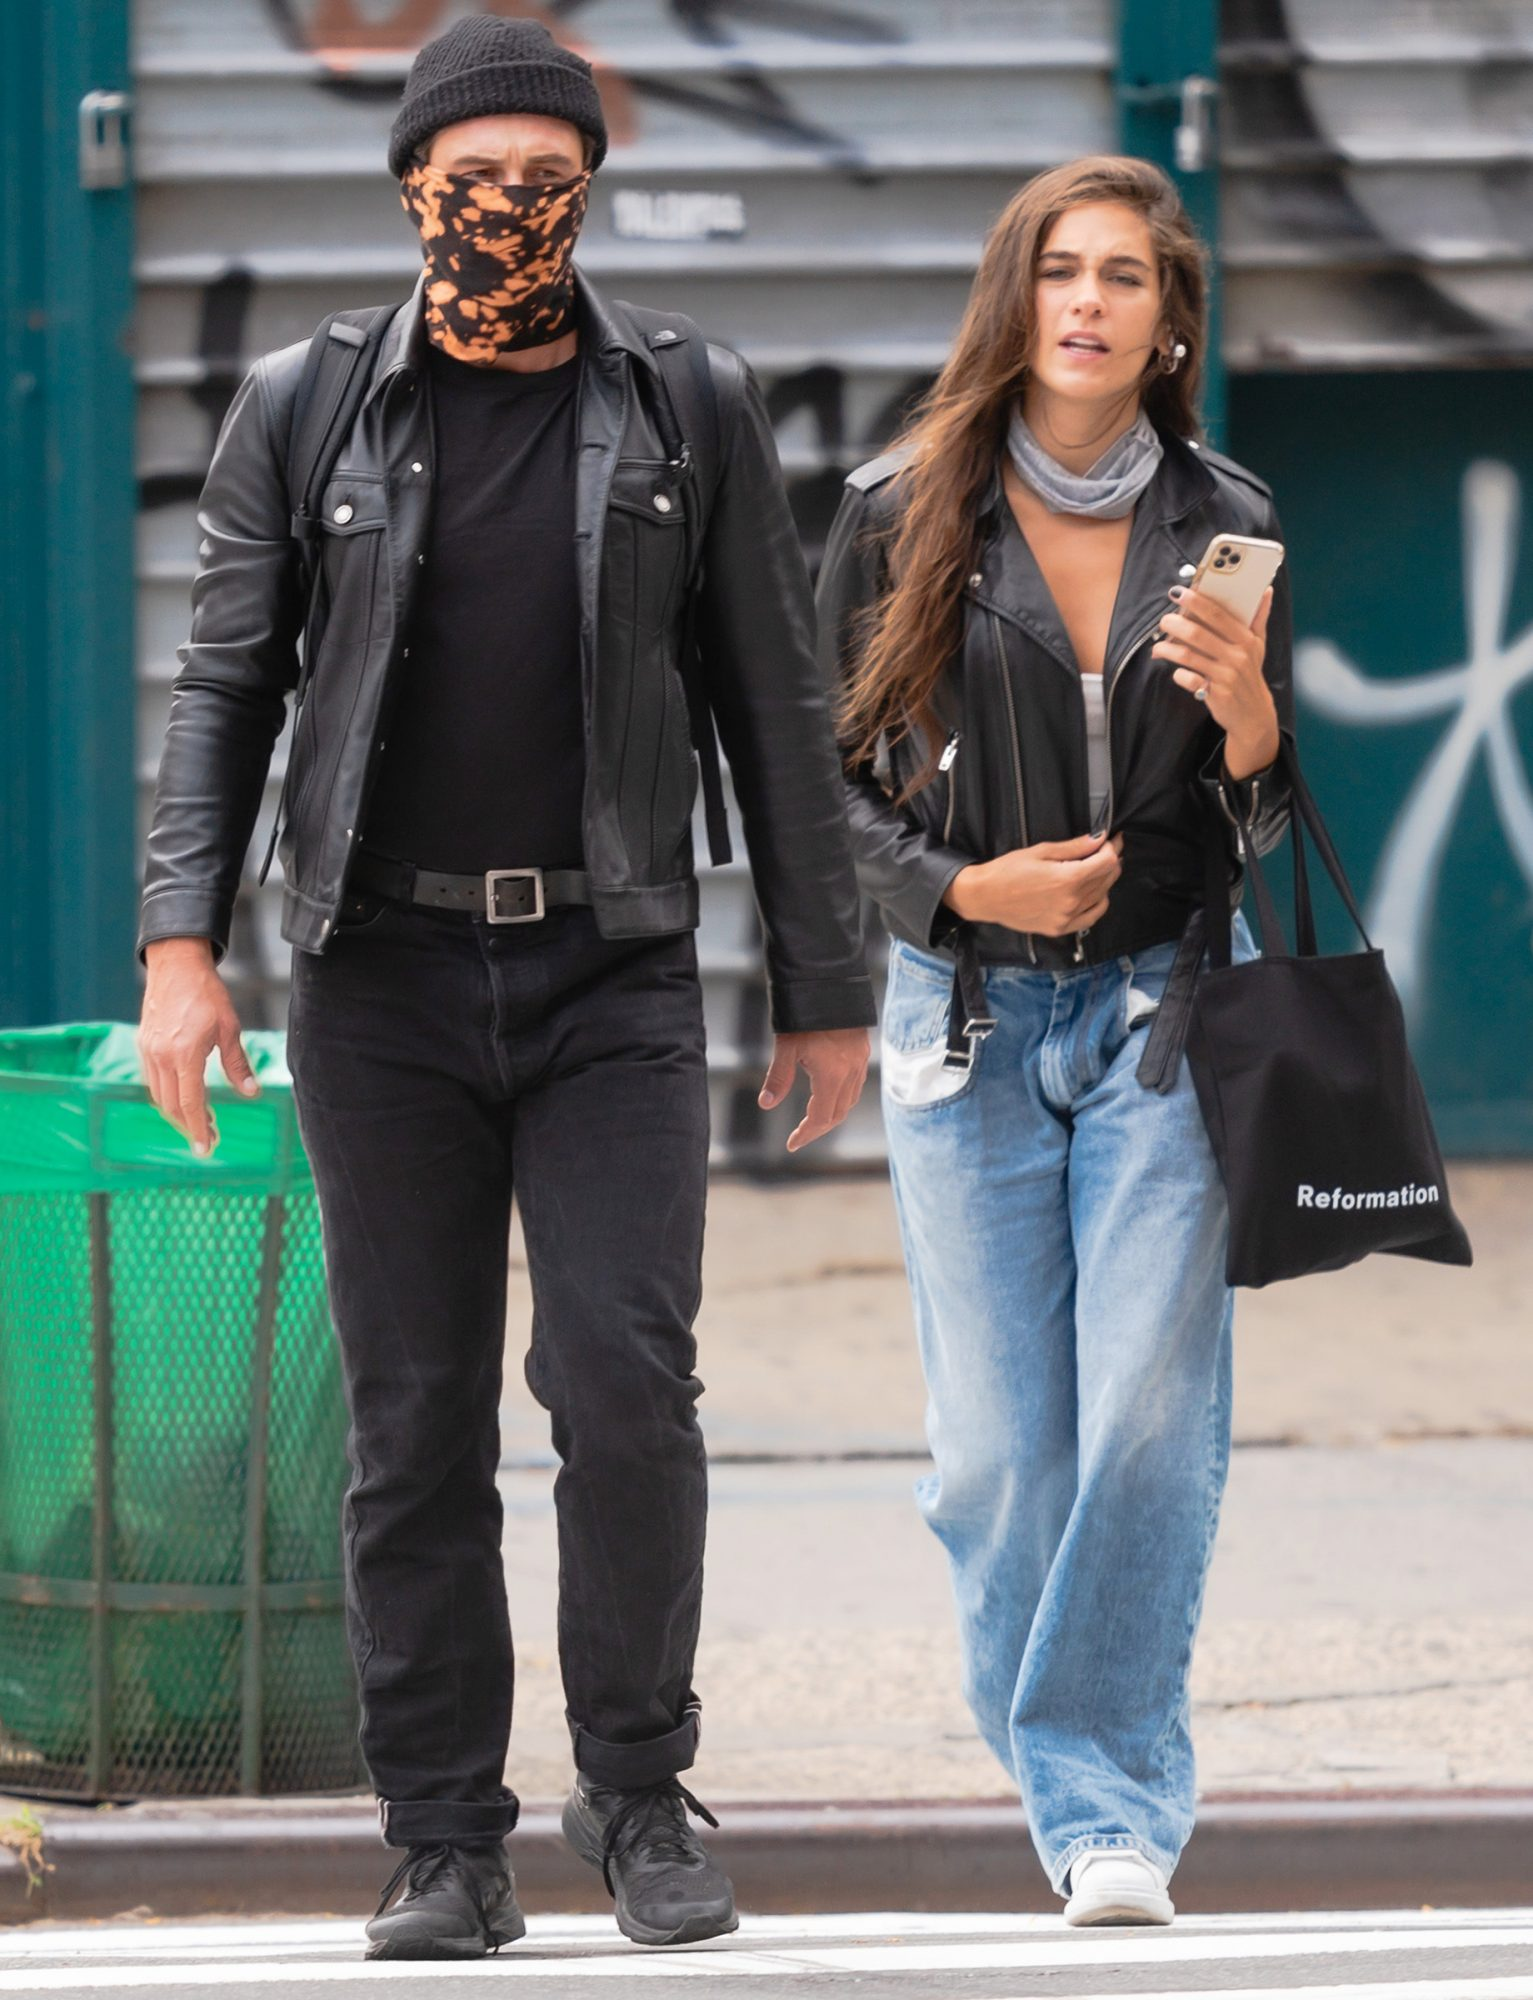 EXCLUSIVE: James Franco and Isabel Pakzad Have a Spa Day in New York City